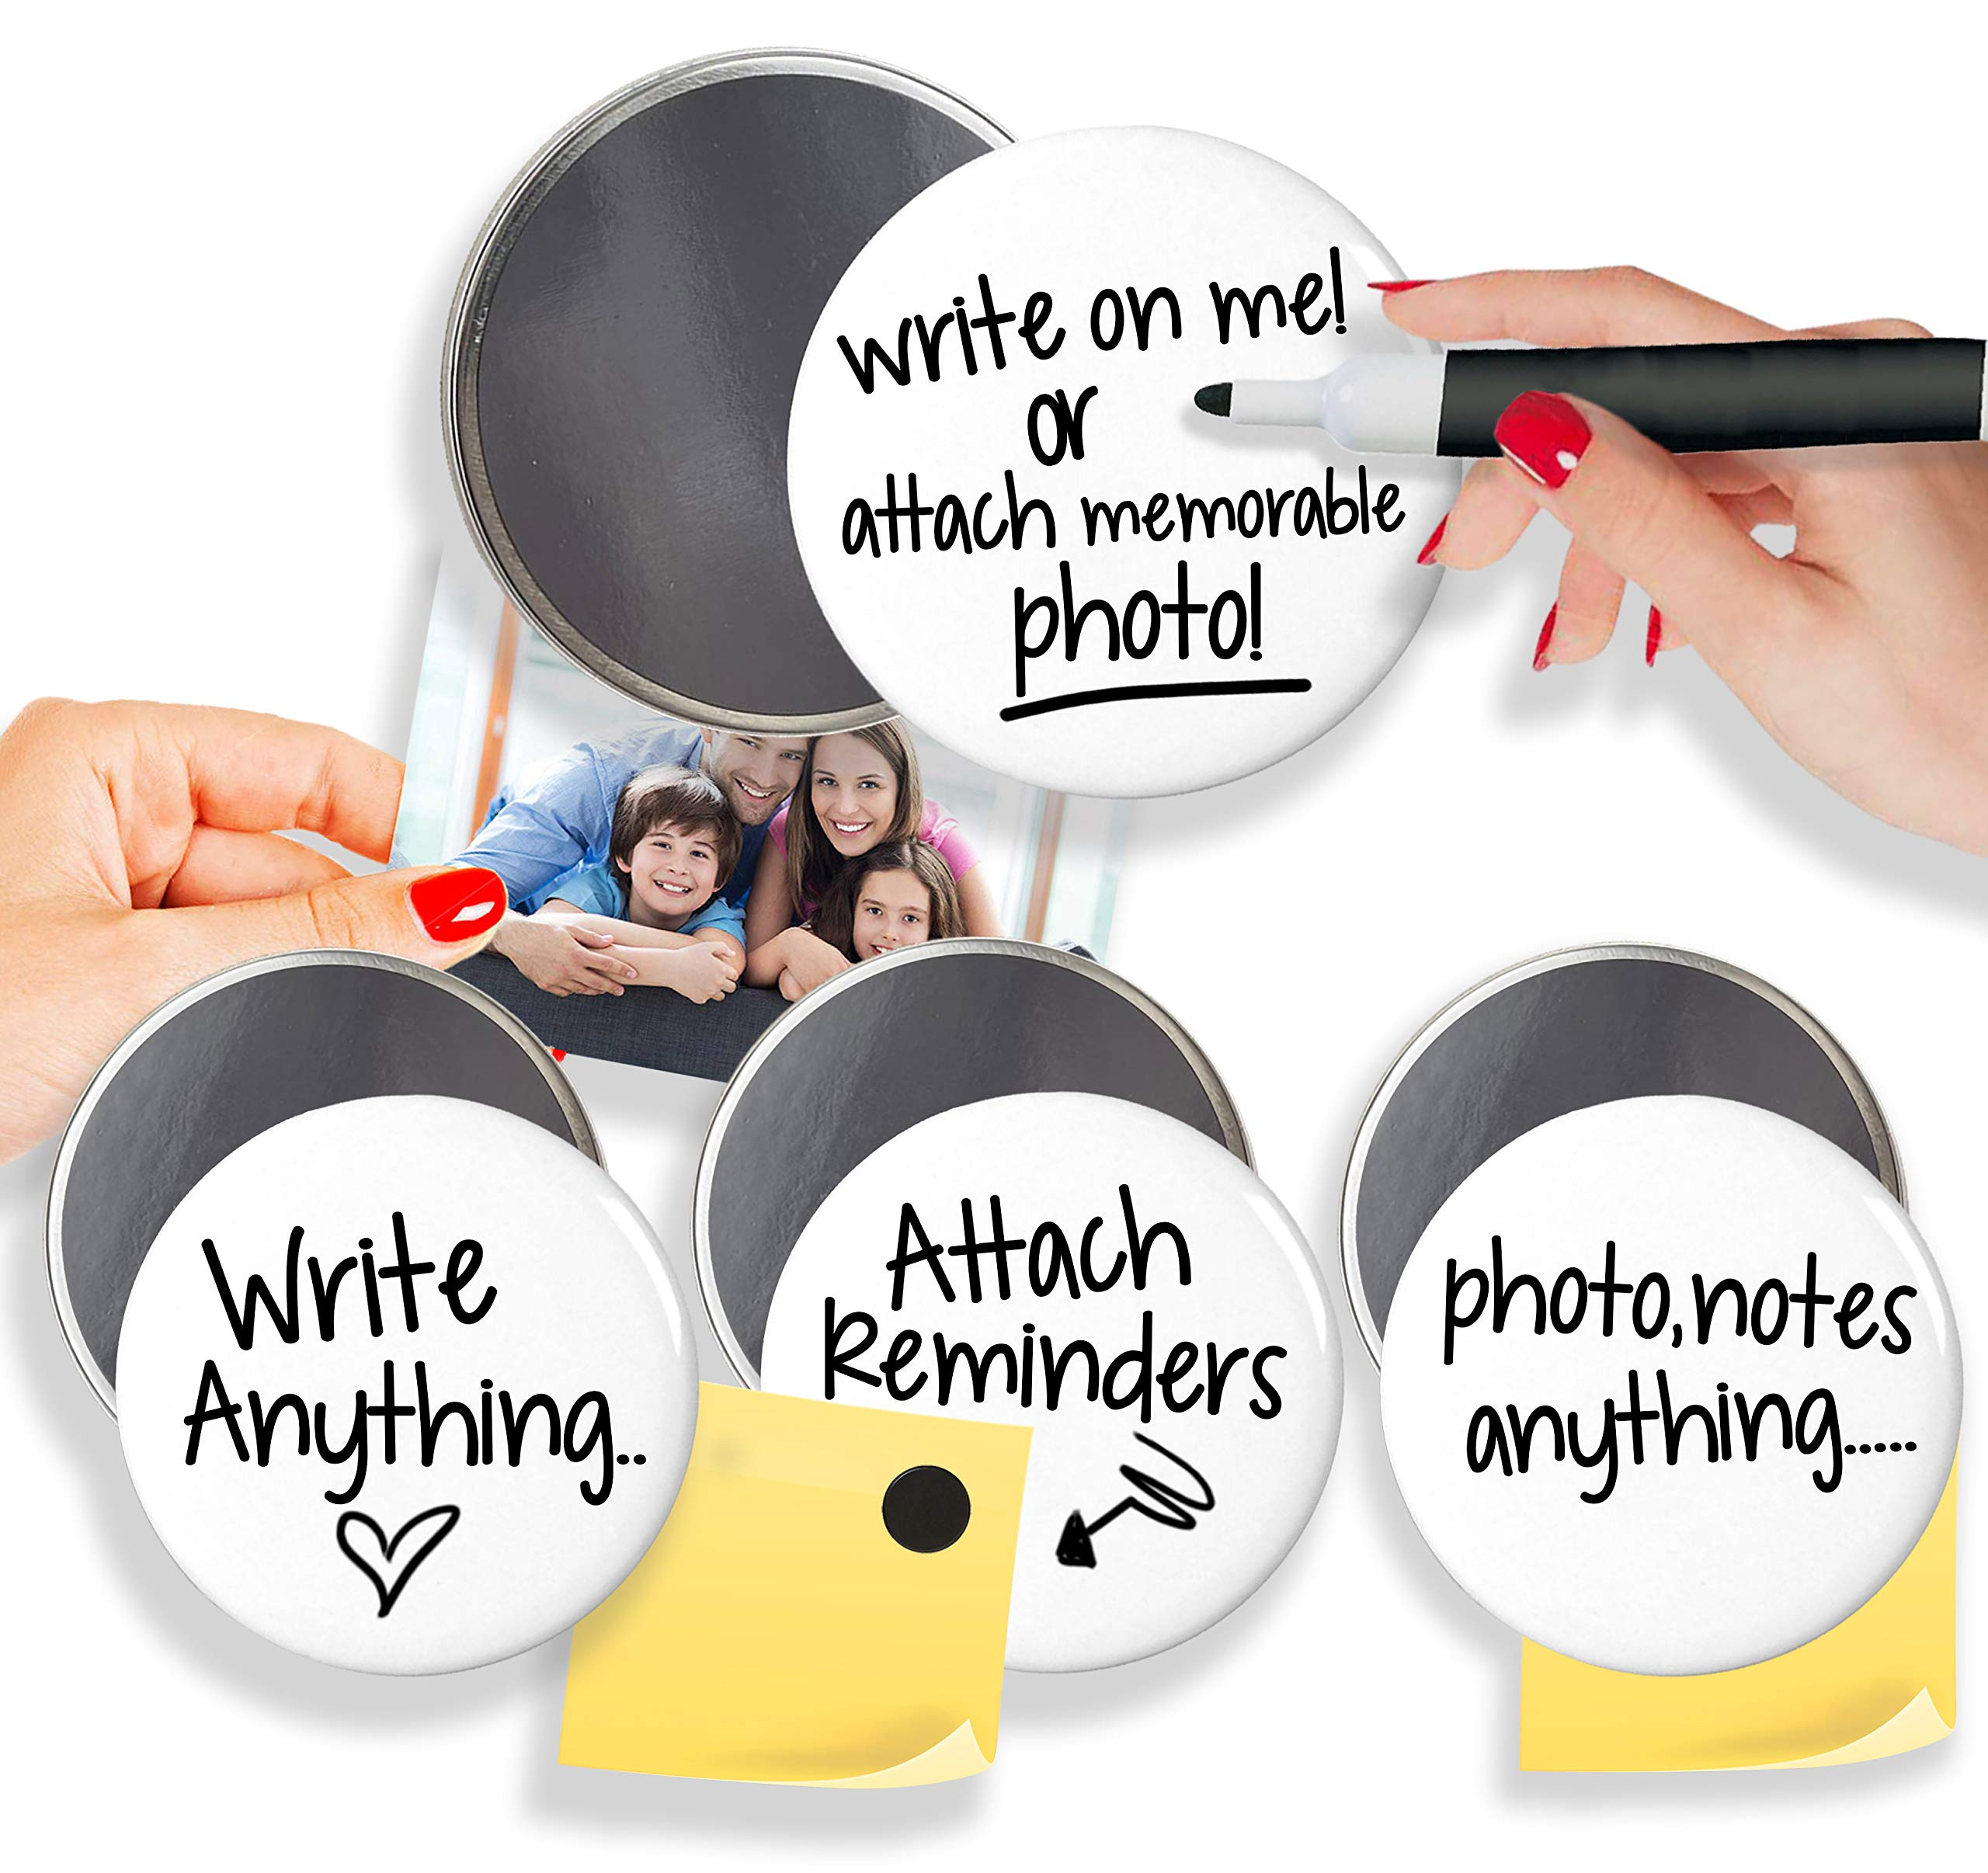 Round Dry-Erase Board Fridge Magnets, Magnetic Sticky Notes Attachment Whiteboard Pin Reminder (3, 2.9)